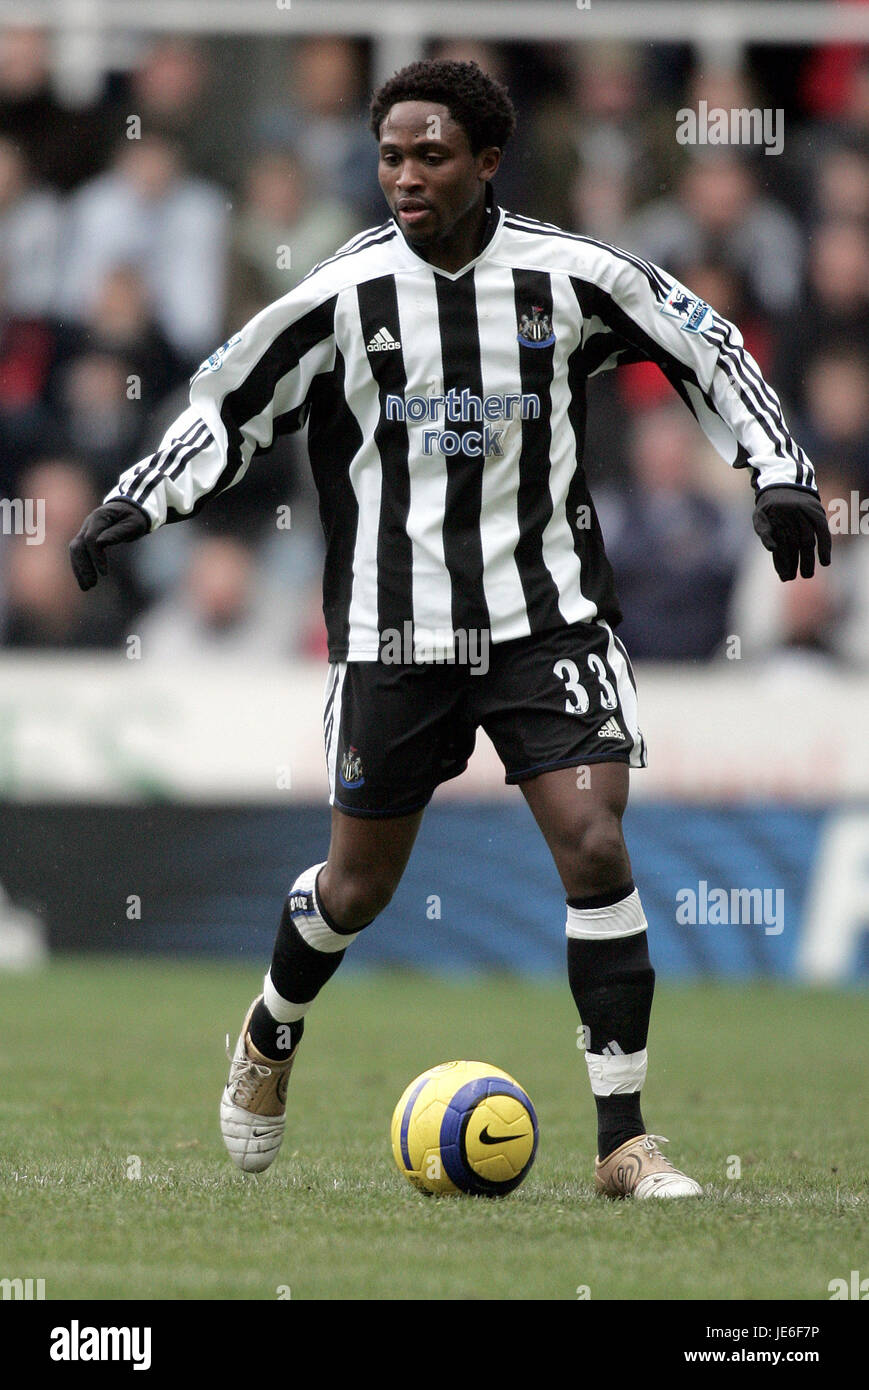 CELESTINE BABAYARO NEWCASTLE UNITED FC ST JAMES PARK NEWCASTLE ENGLAND 27 February 2005 - Stock Image